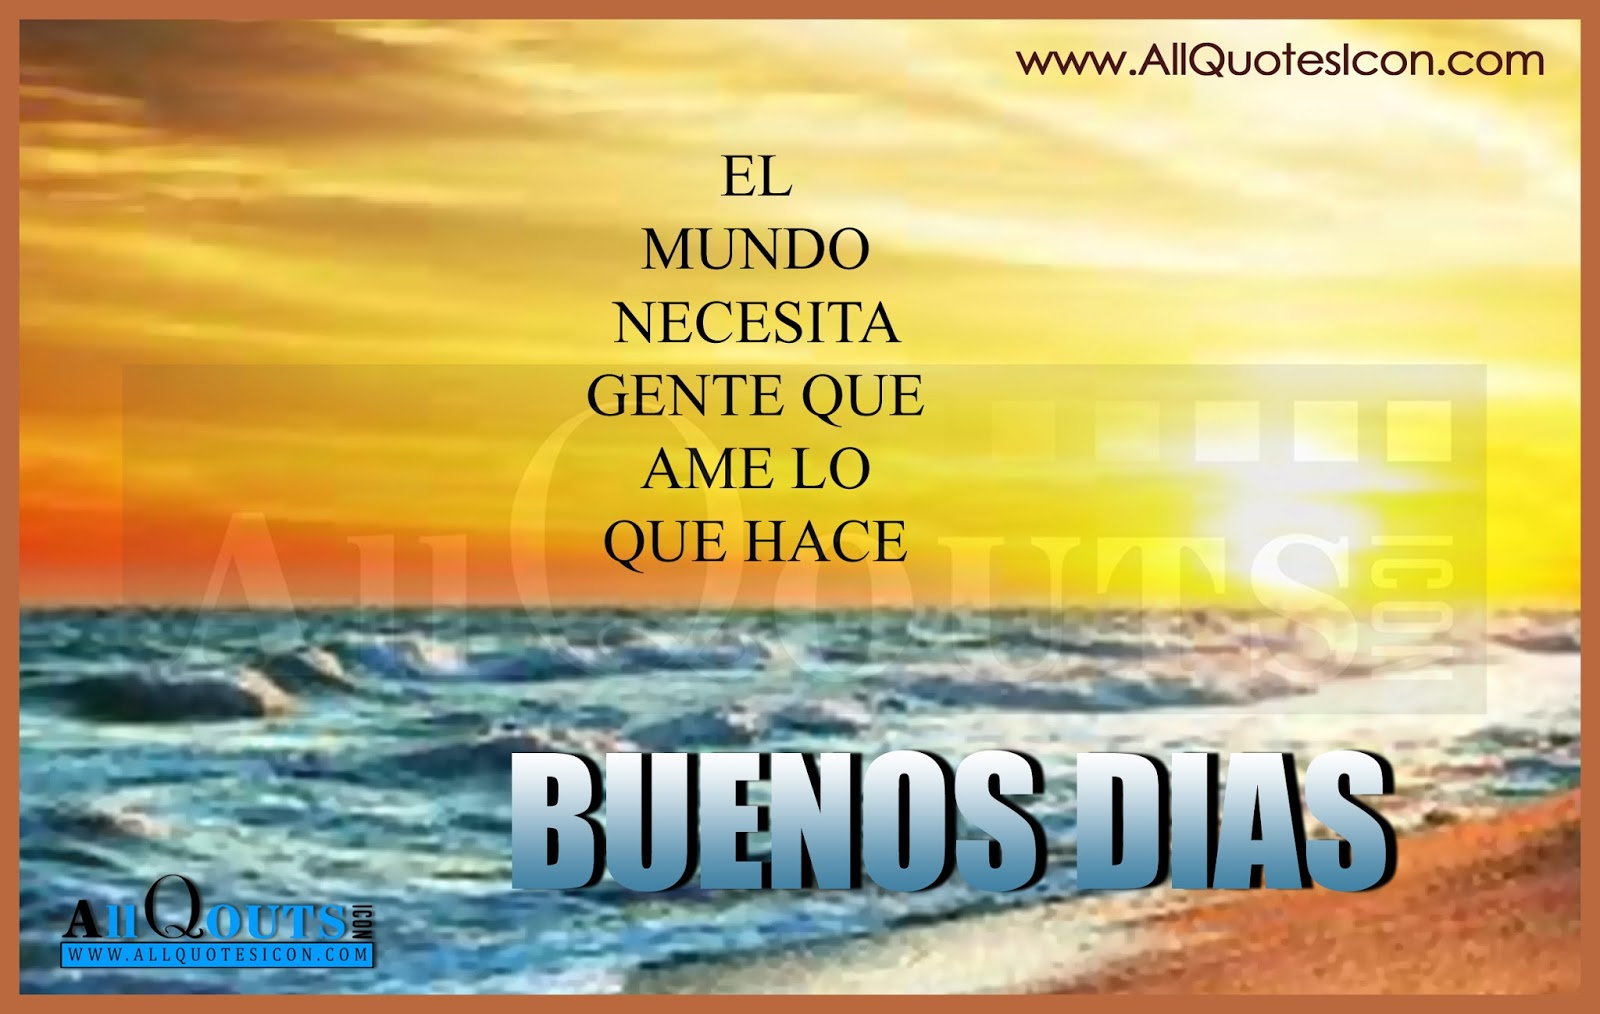 Spanish Good Morning Quotes And Wishes Allquotesicon